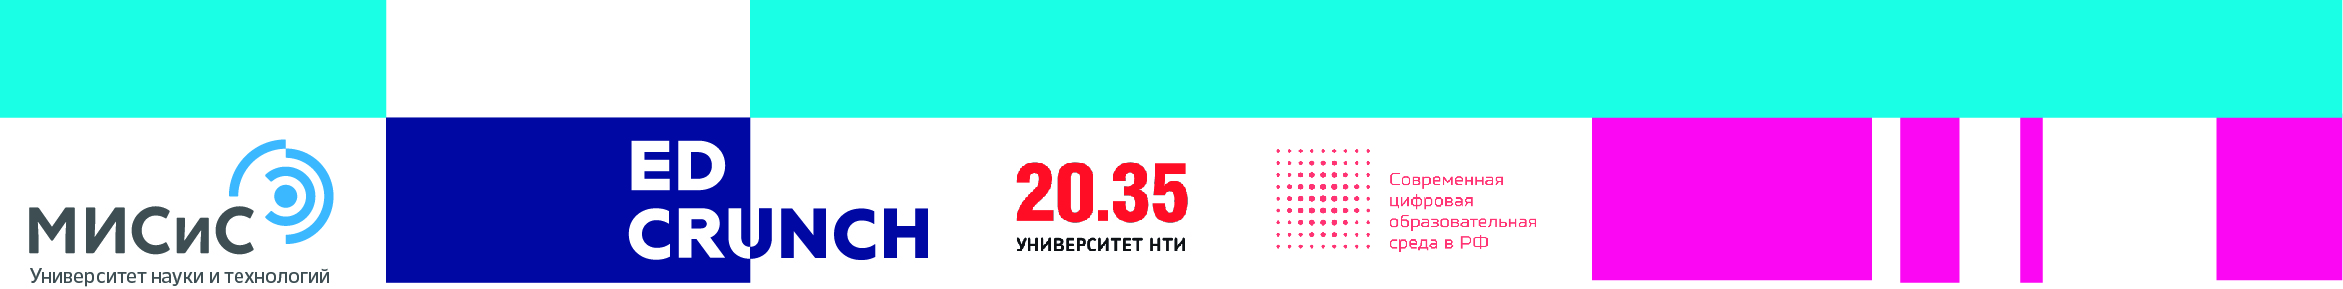 #EDCRUNCH-2019: СТУДЕНТЫ БУДУТ УЧИТЬСЯ В ВЕДУЩИХ ВУЗАХ ONLINE